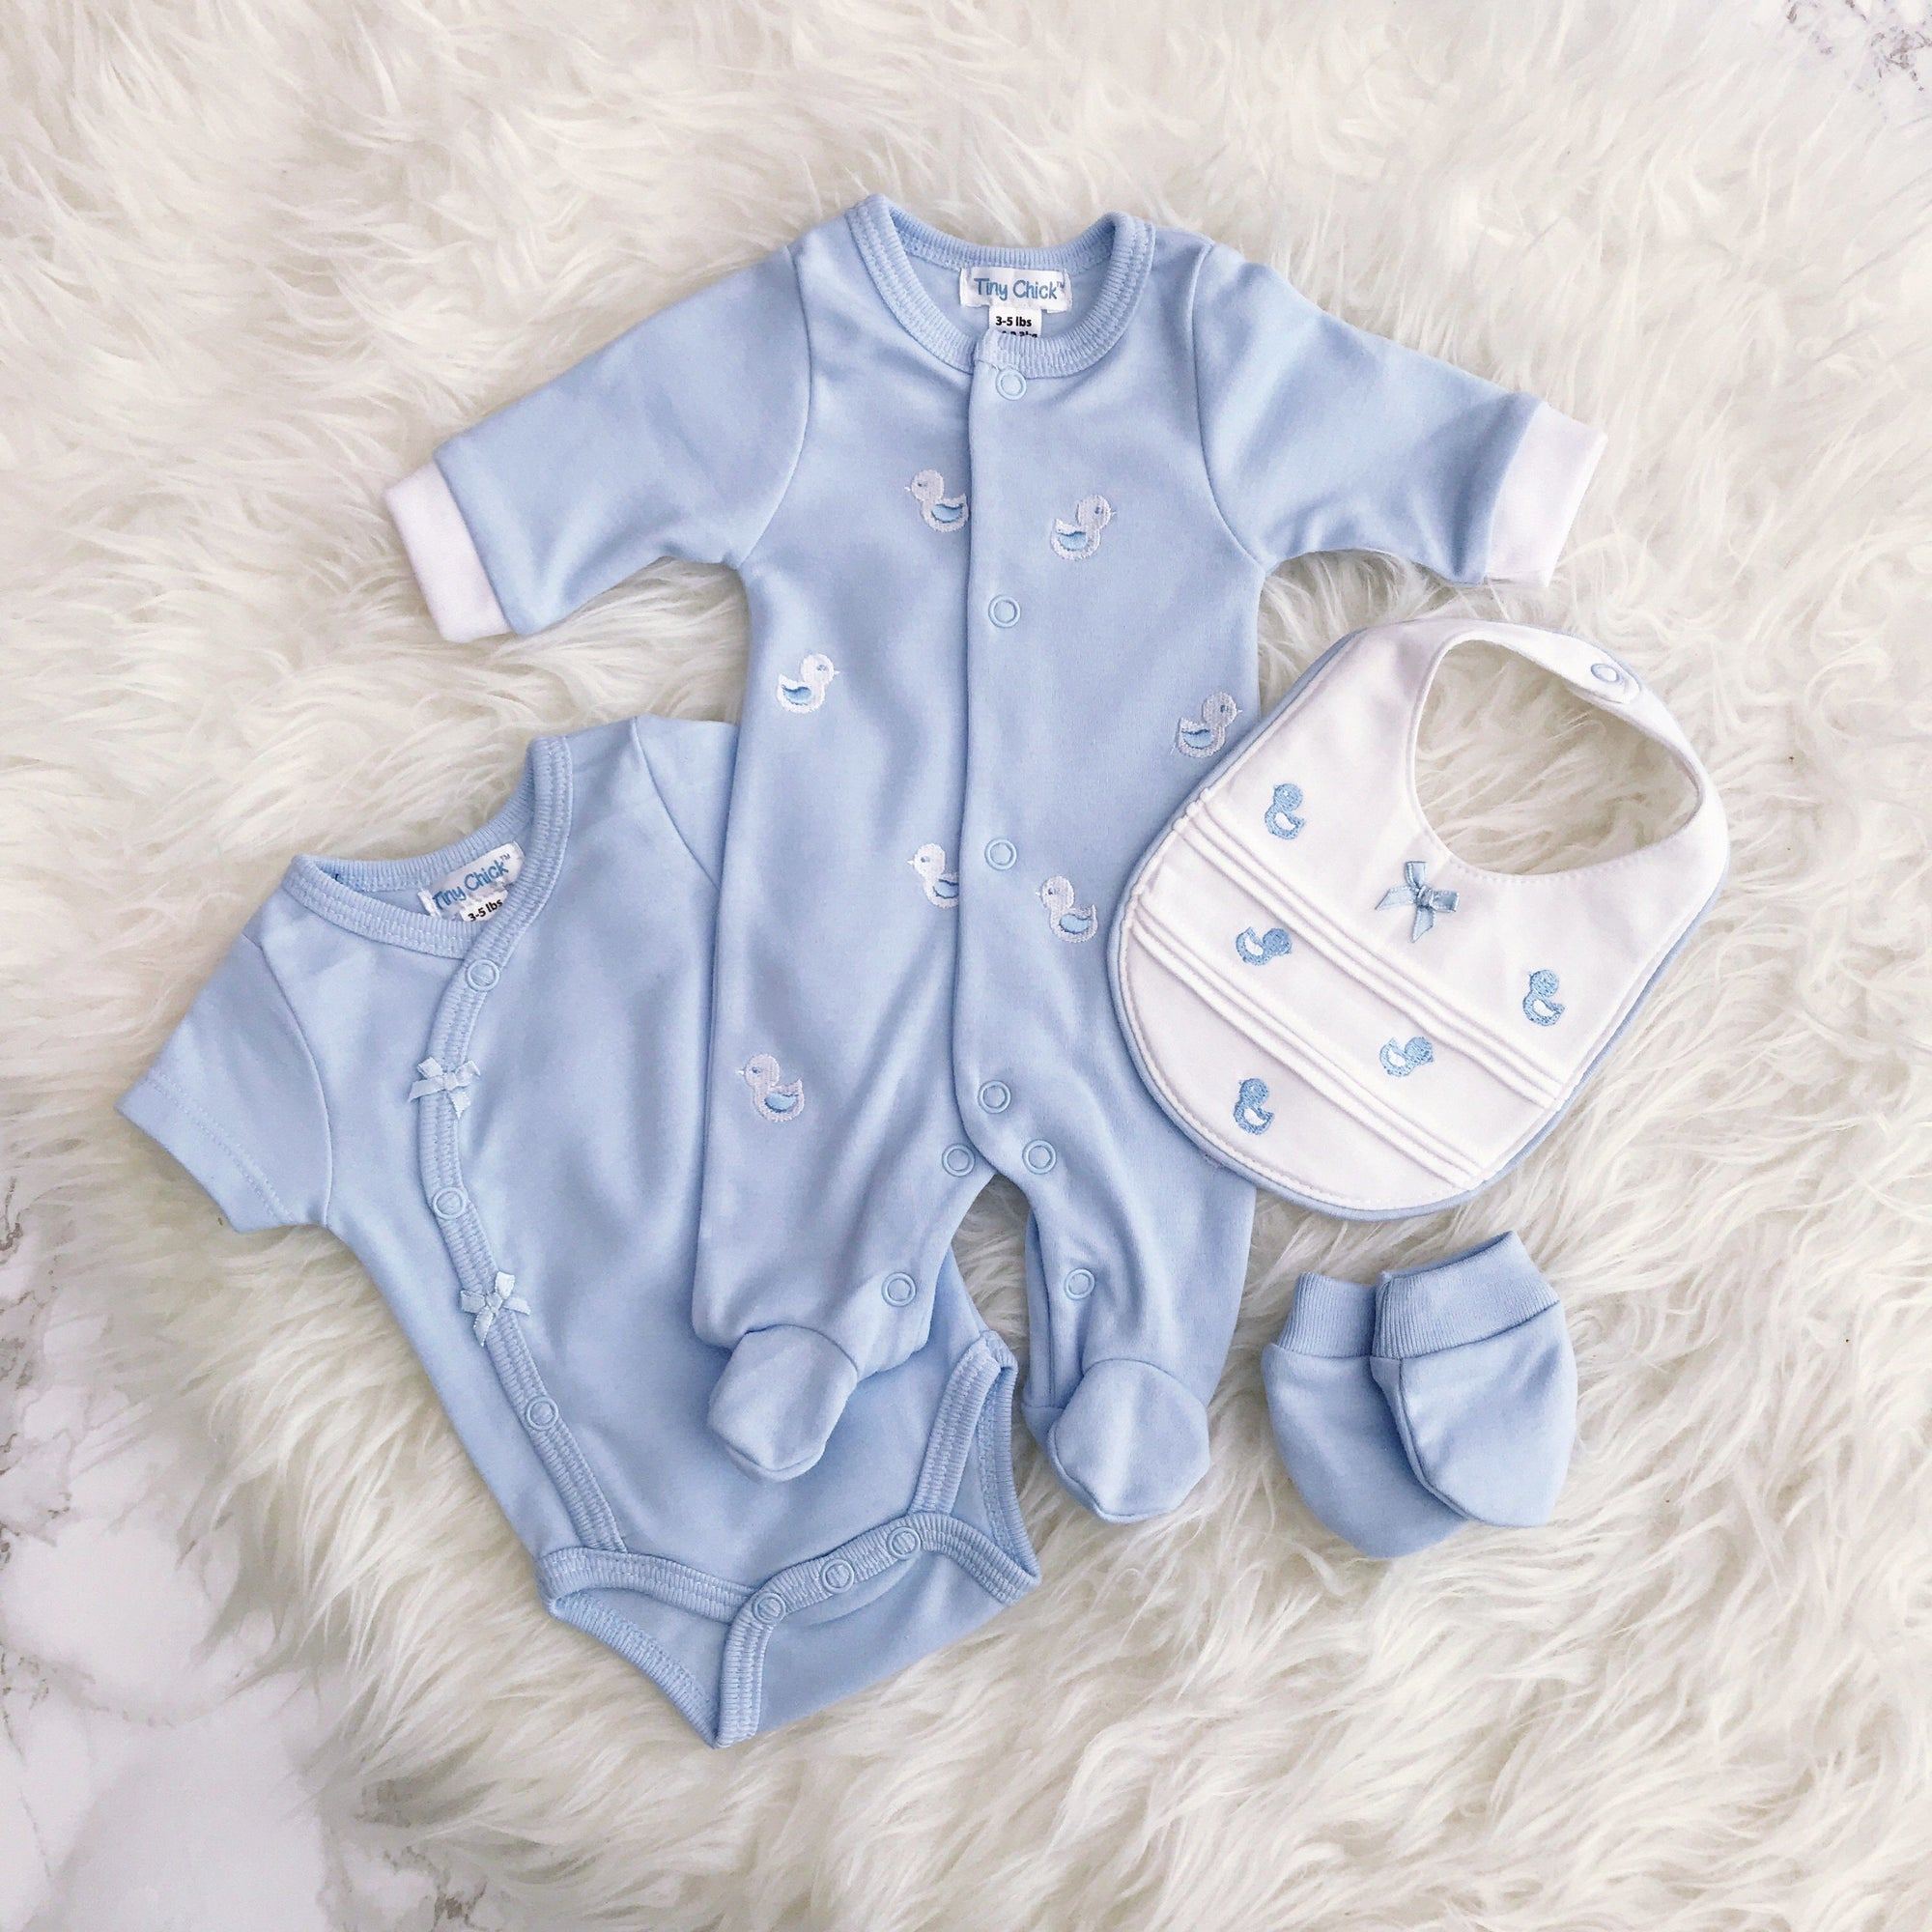 Tiny Chick Premature: Blue Embroidered Chick 4-Piece Sleepsuit Set | Millie and John